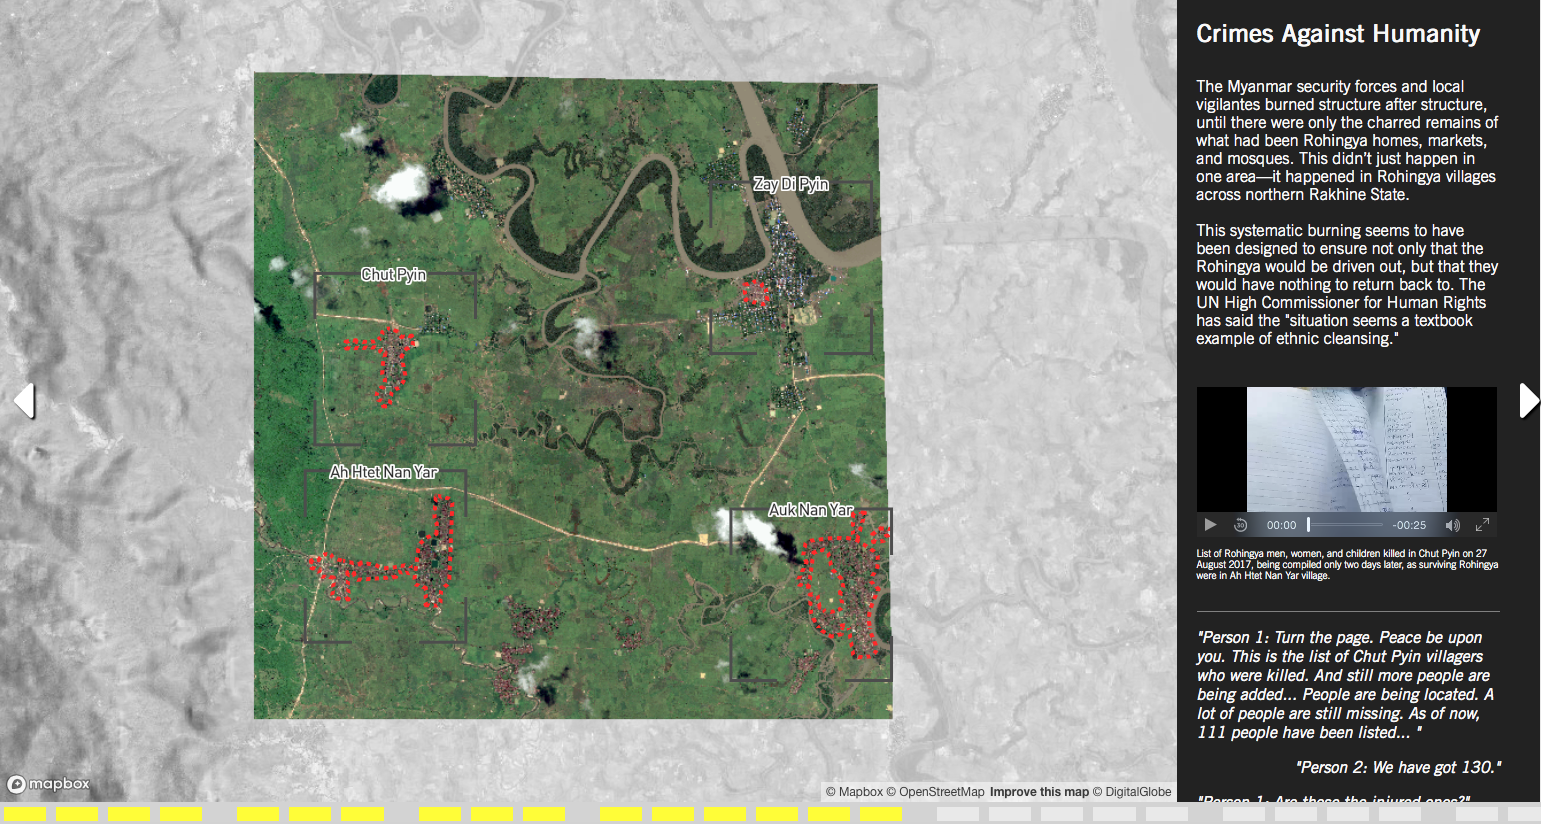 Interactive map showing the burned remains of Rohingya homes, markets, and mosques